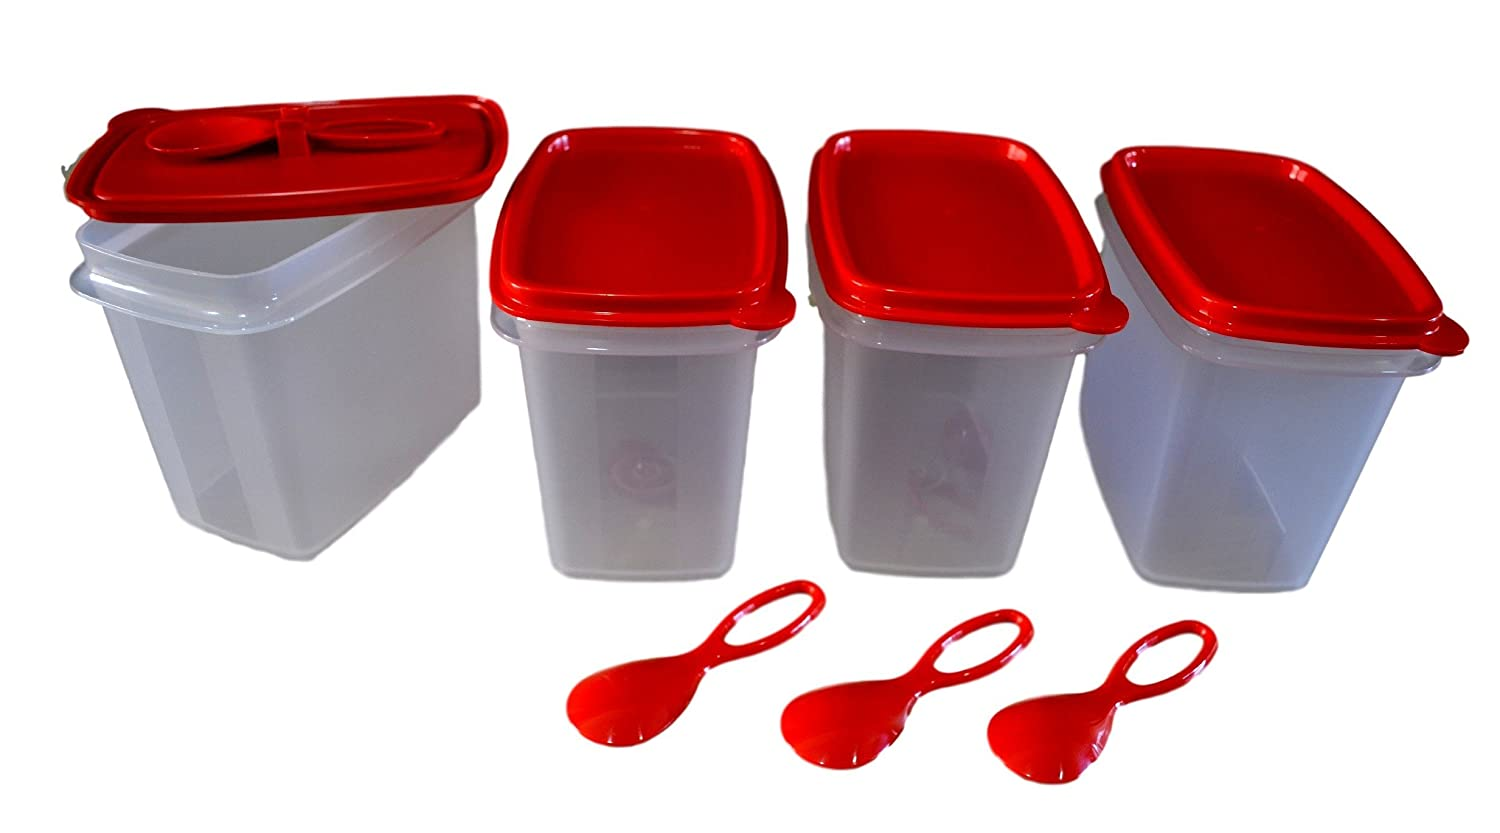 Amazon: Tupperware Within Reach Canister (570ml), Set Of 4: Kitchen &  Dining